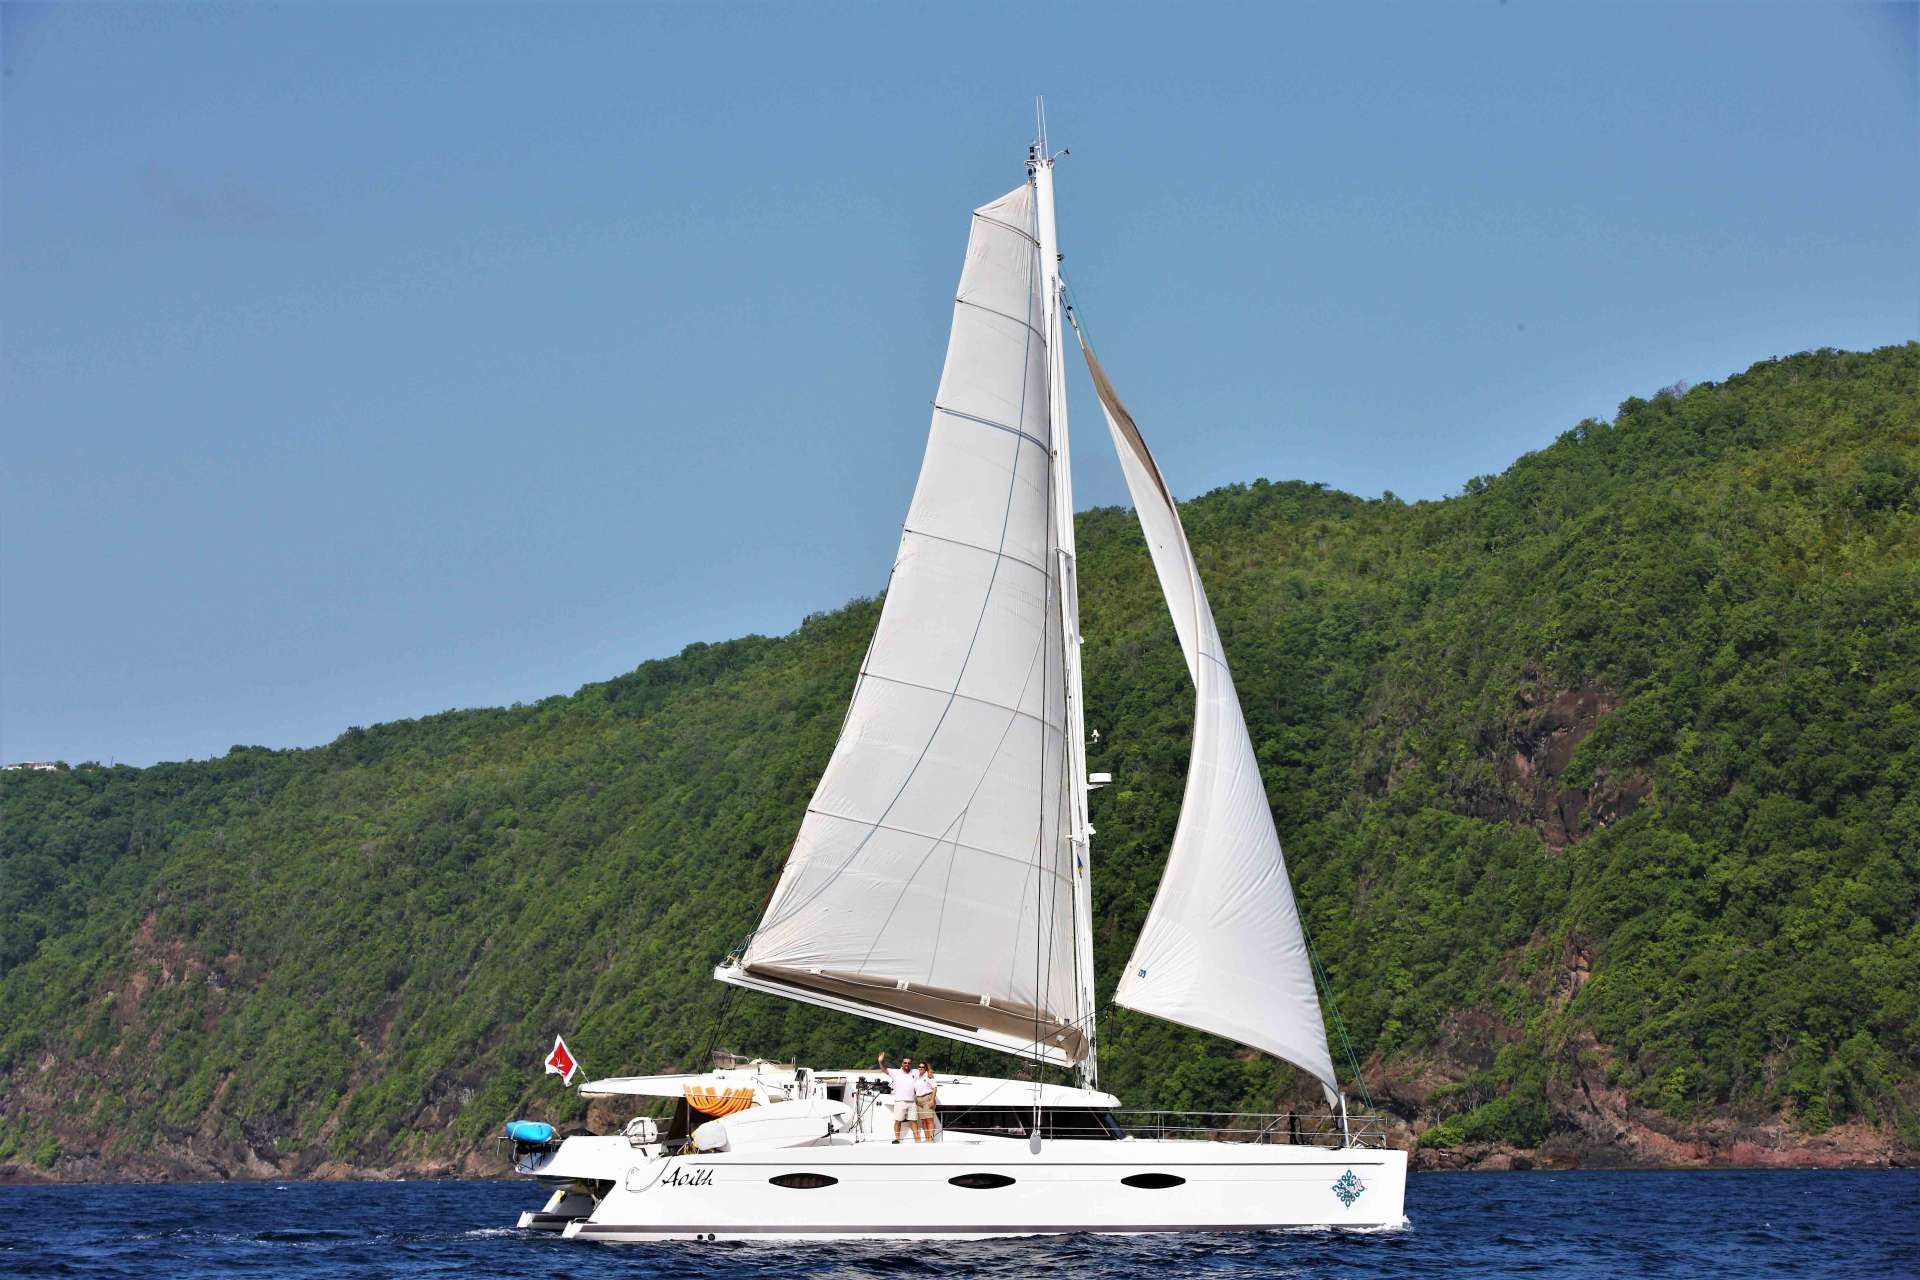 Charter with AOIBH on compassyachtcharters.com